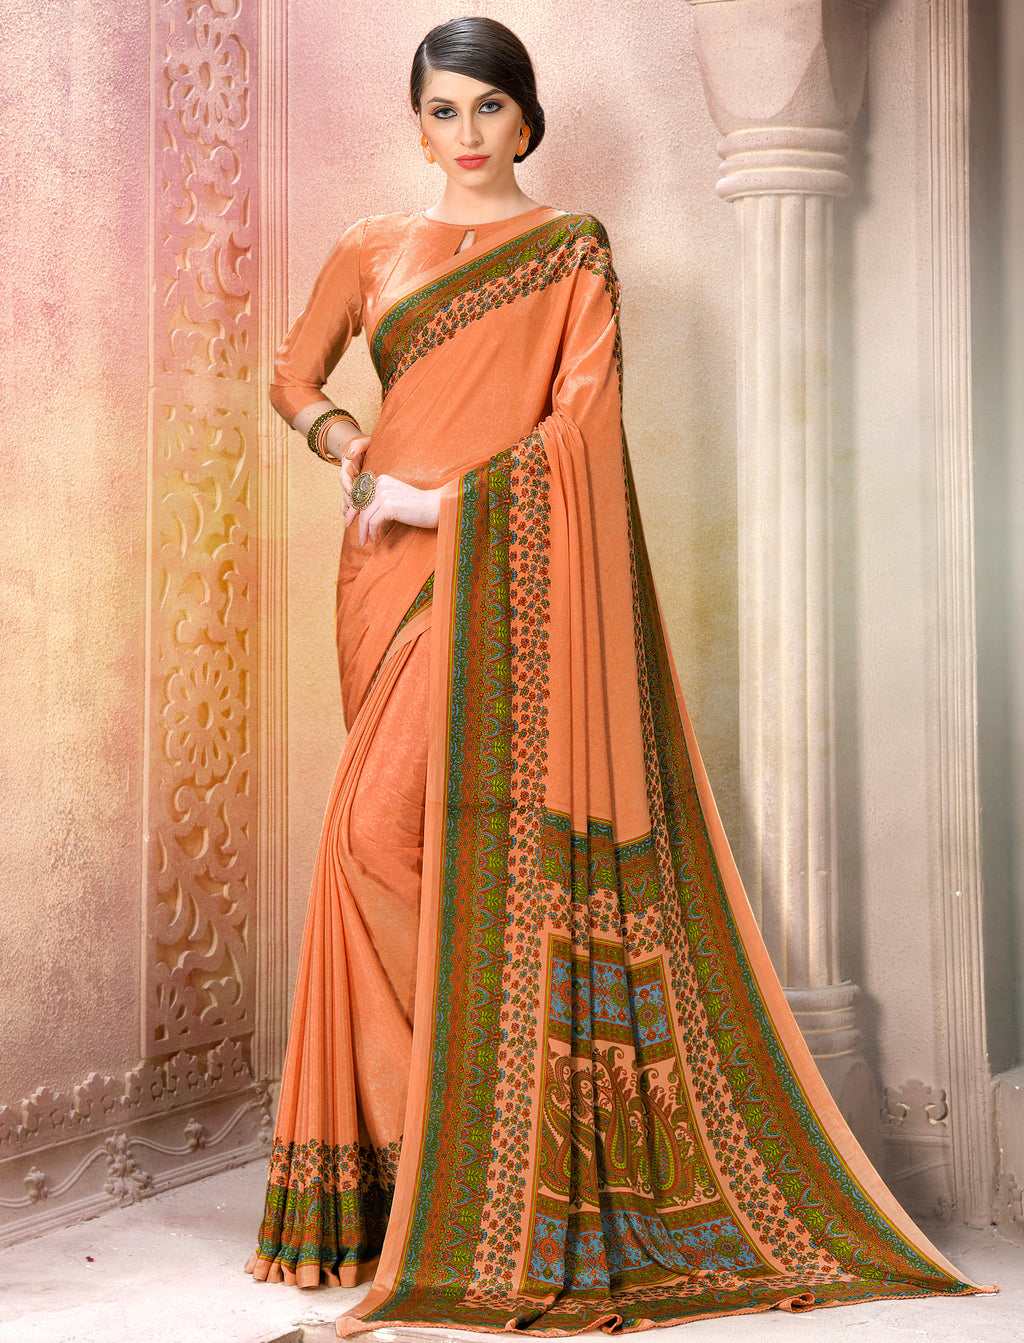 Peach Color Crepe Soft & Light Weight Printed Sarees NYF-7262